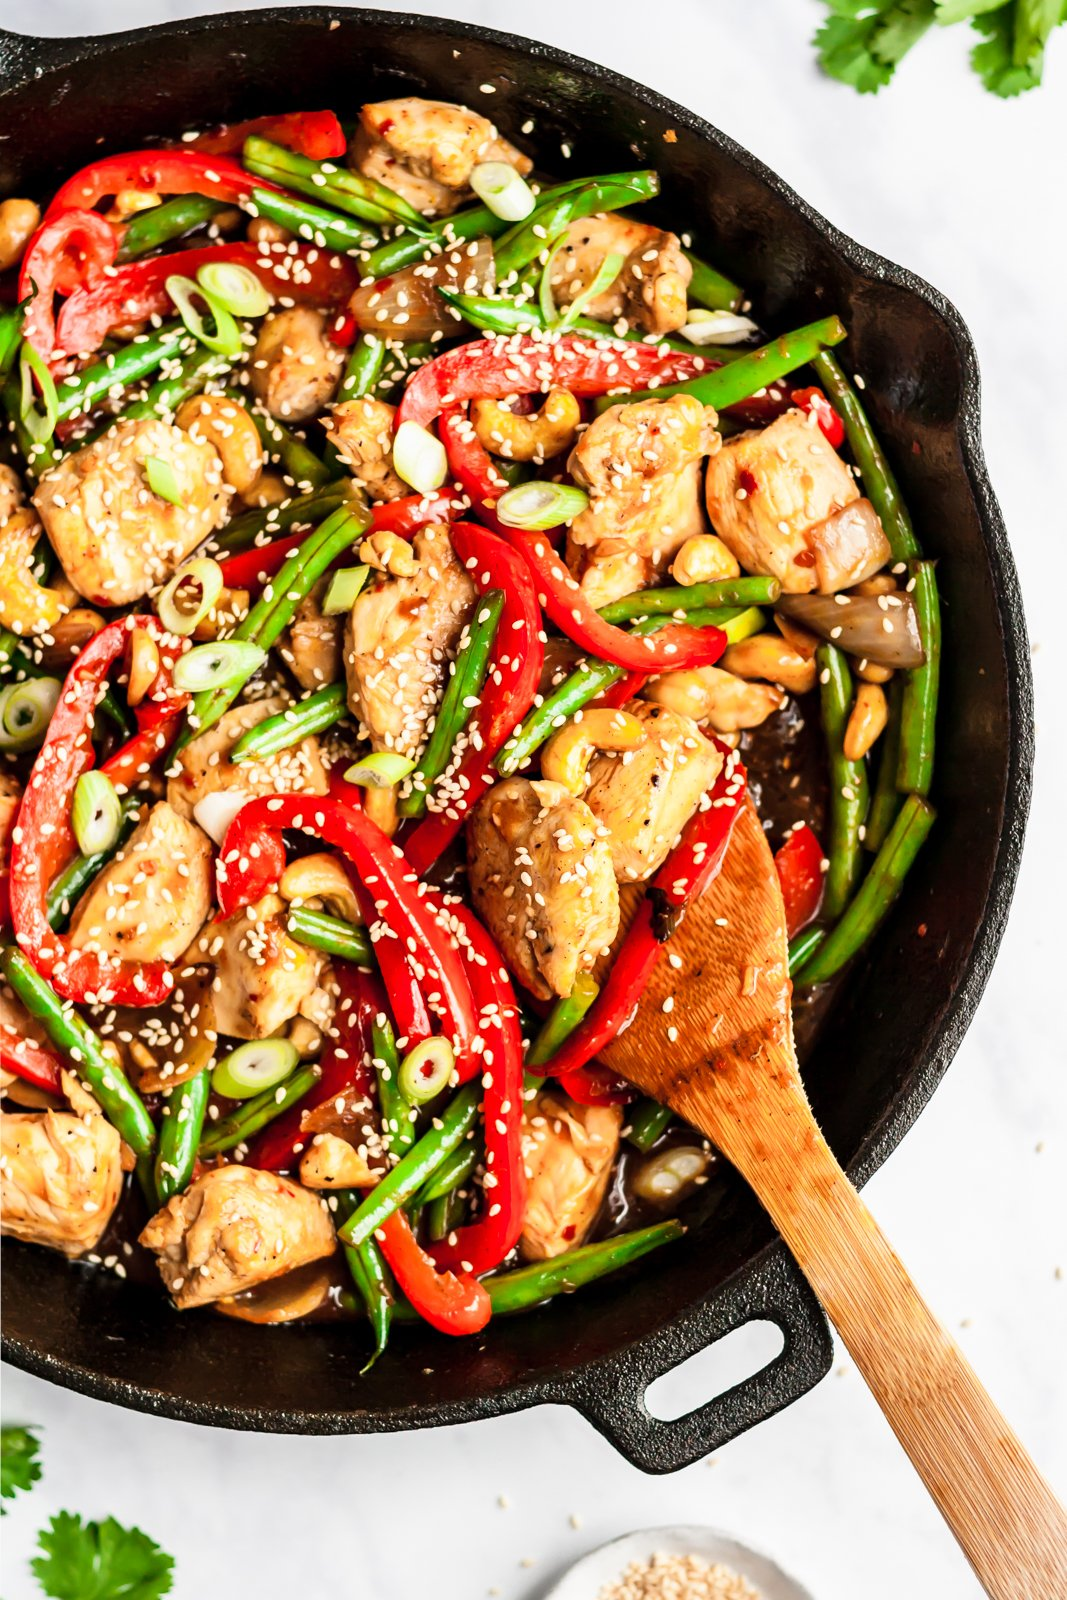 orange chicken stir fry in a skillet pan with a wooden spoon